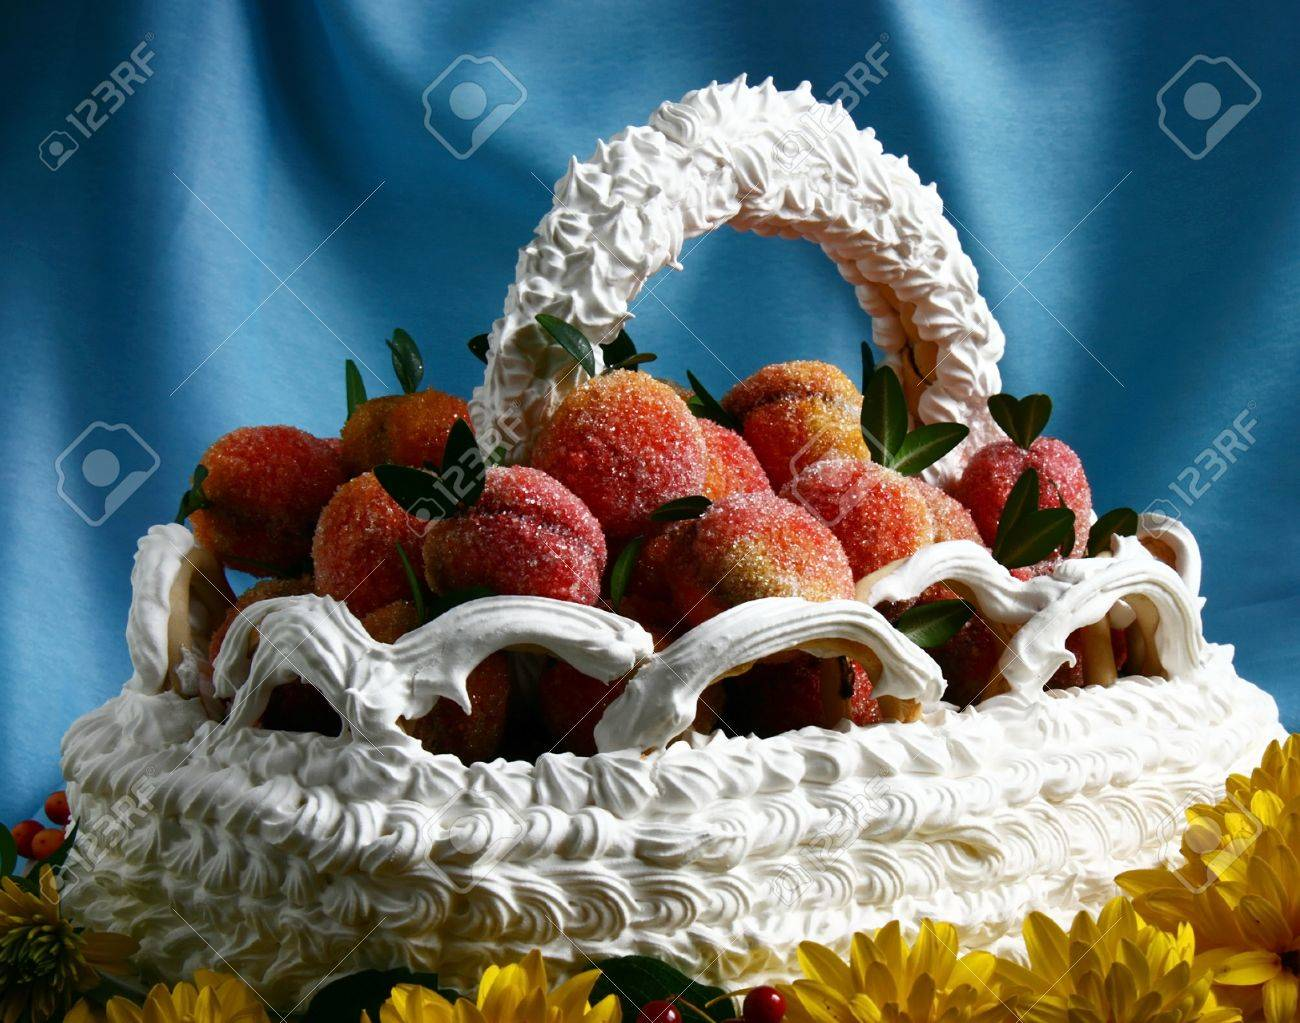 A Birthday Cake In The Form Of The Basket Of Peaches On A Blue